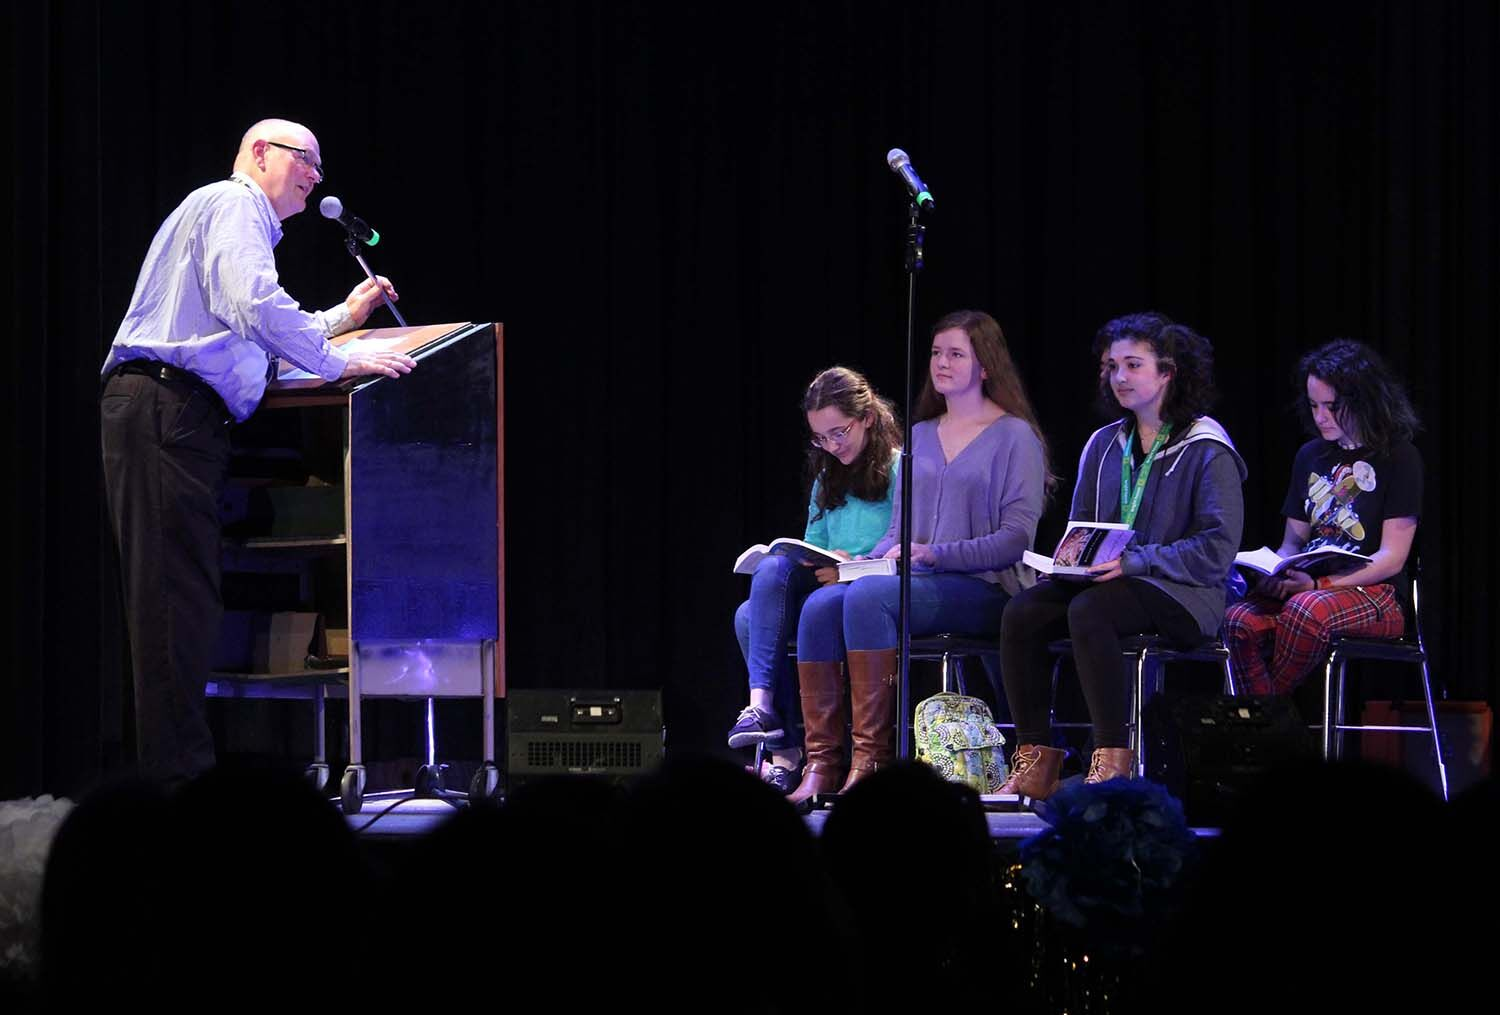 Reading out to the crowd, Matthew Penn along with a small group of students perform a skit at Faculty Idol Jan. 31 in the auditorium. The act was a poem which spoke about typical situations in a classroom.